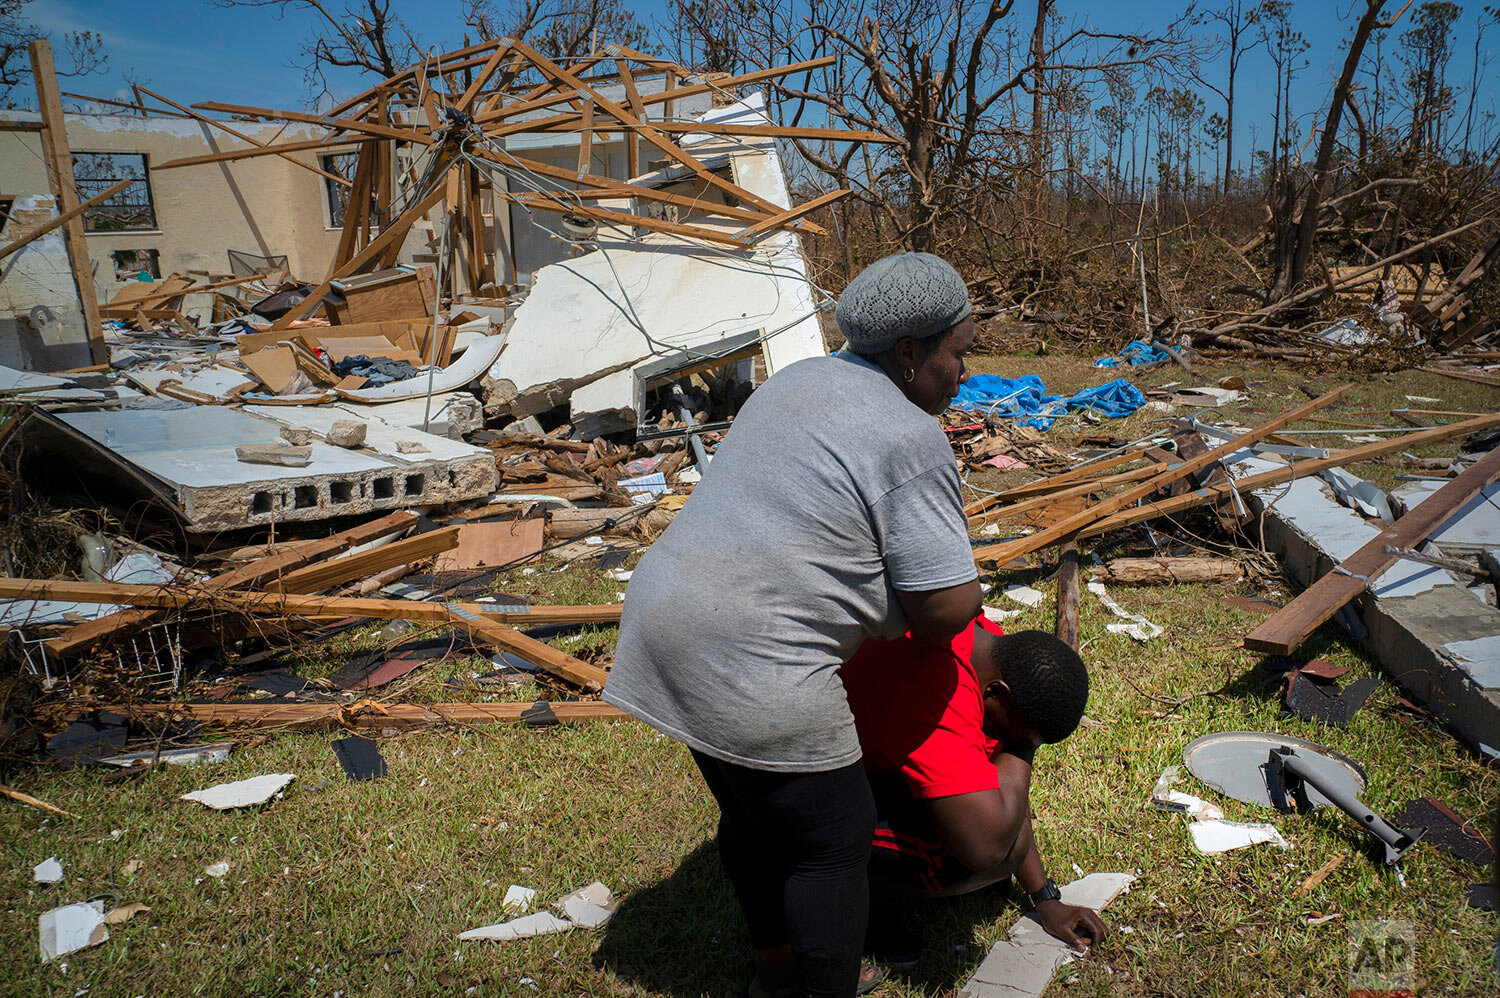 A woman comforts a man who cries after discovering his shattered house and not knowing anything about his 8 relatives who lived in the house, missing in the aftermath of Hurricane Dorian, in High Rock, Grand Bahama, Bahamas, Thursday, Sept. 5, 2019. (AP Photo/Ramon Espinosa)